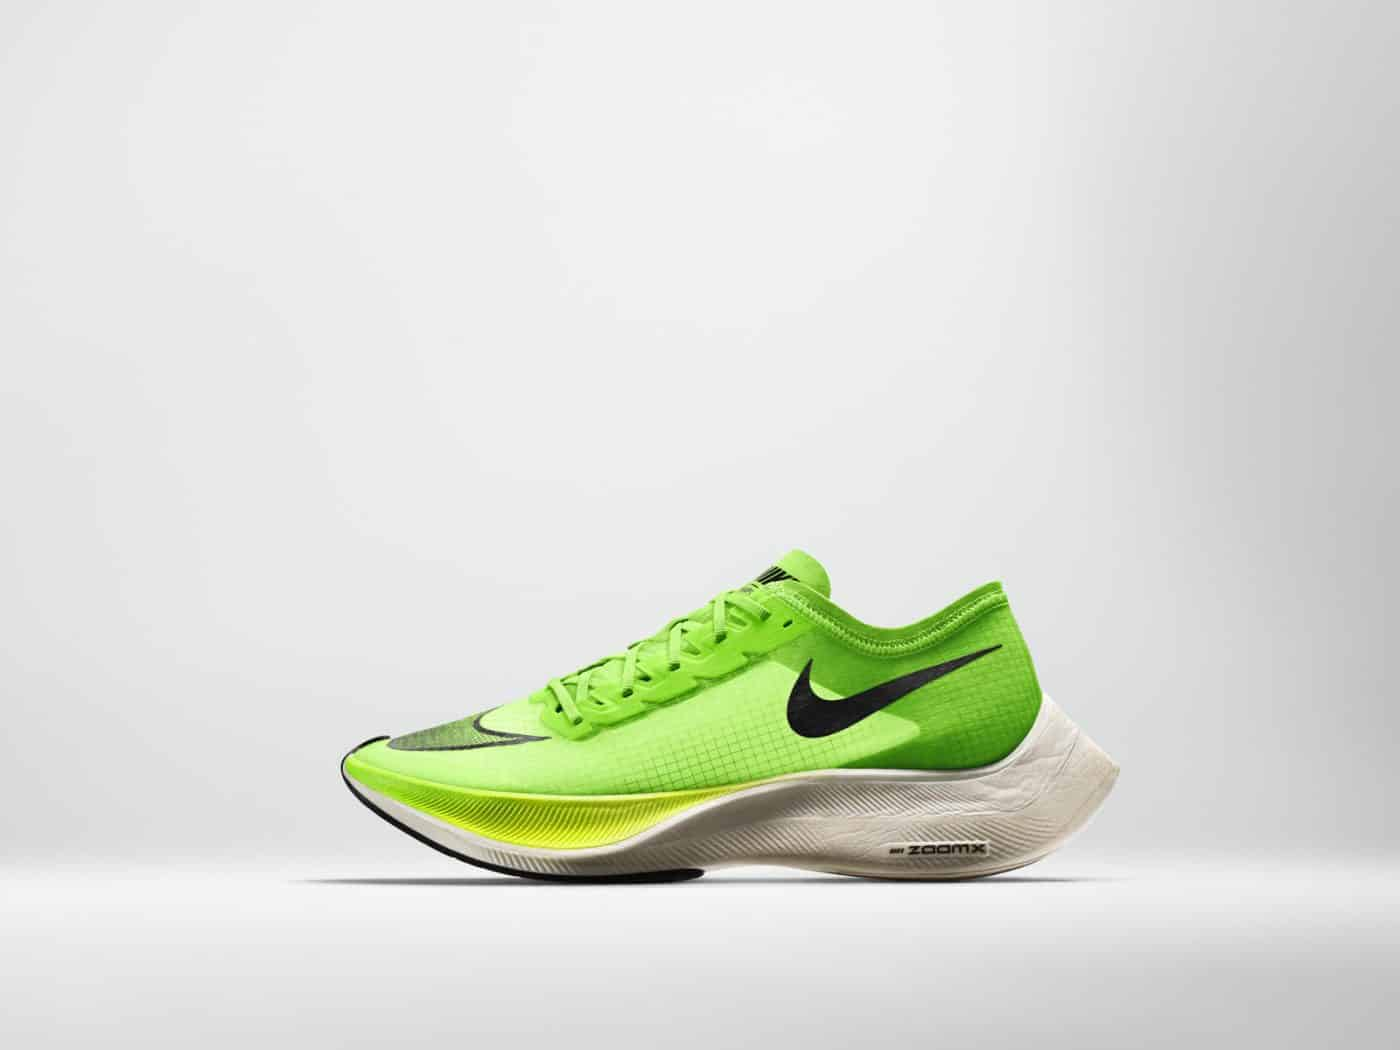 nike-fast-pack-pegasus-36-pegasus-turbo-zoom-fly-3-zoom-next%-4